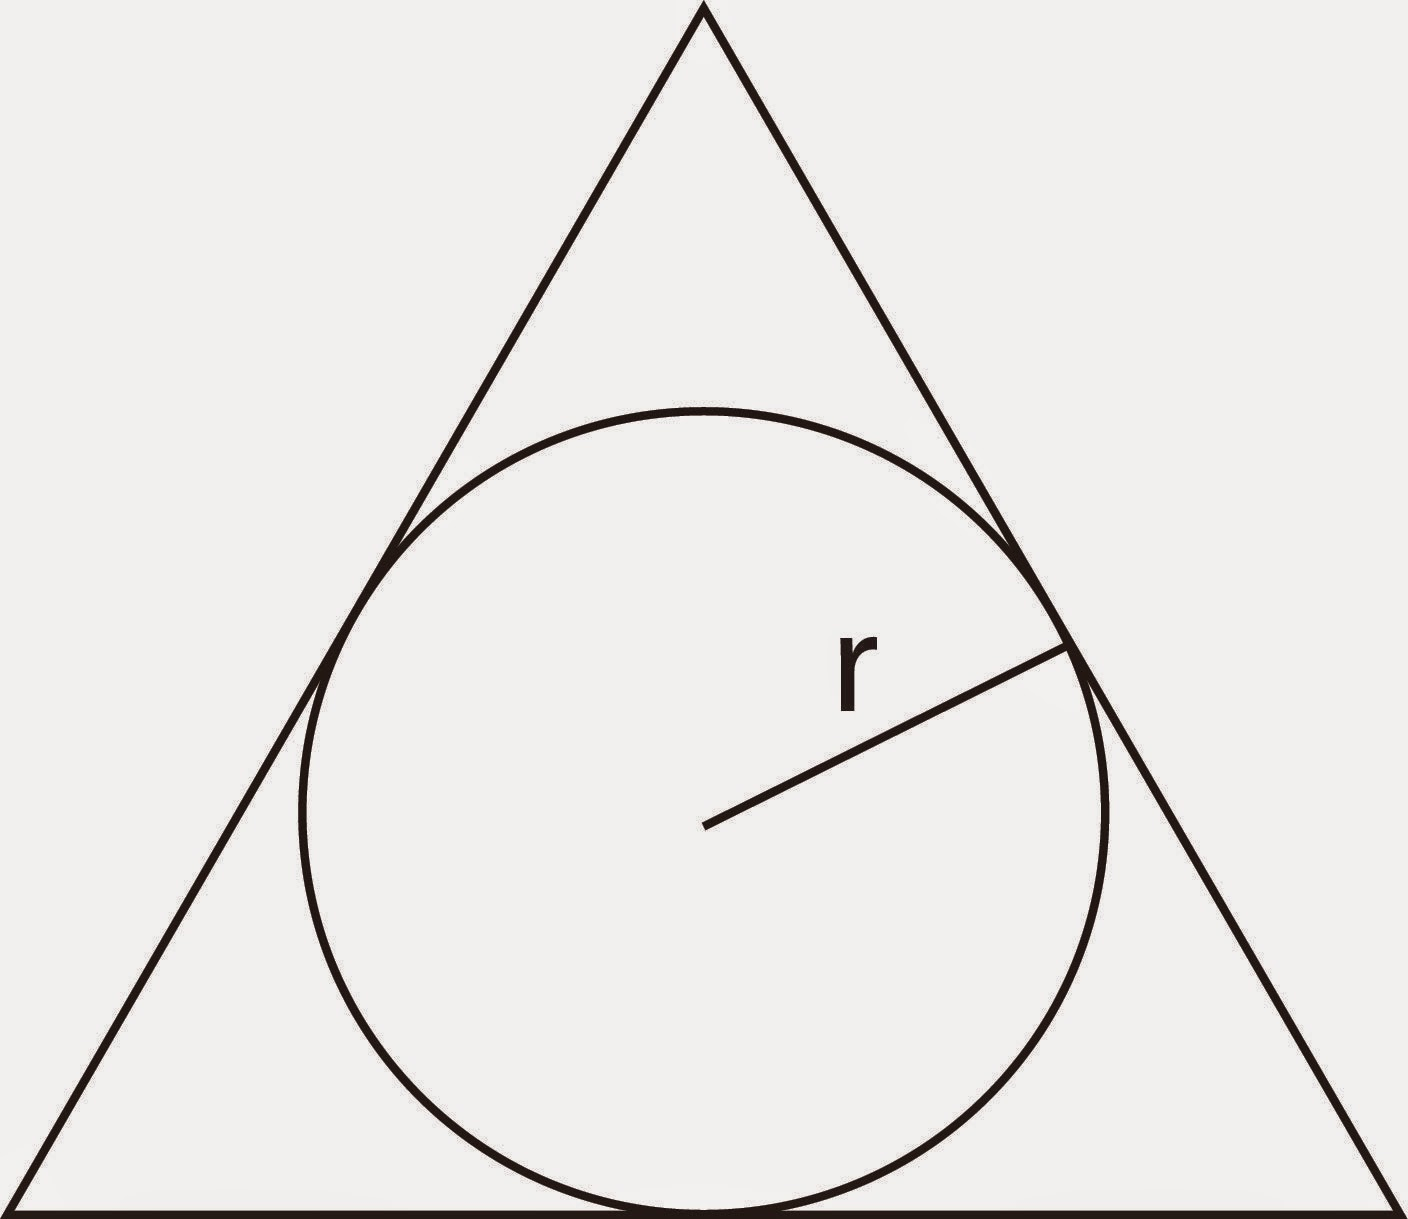 circumscribed triangle with inradius r